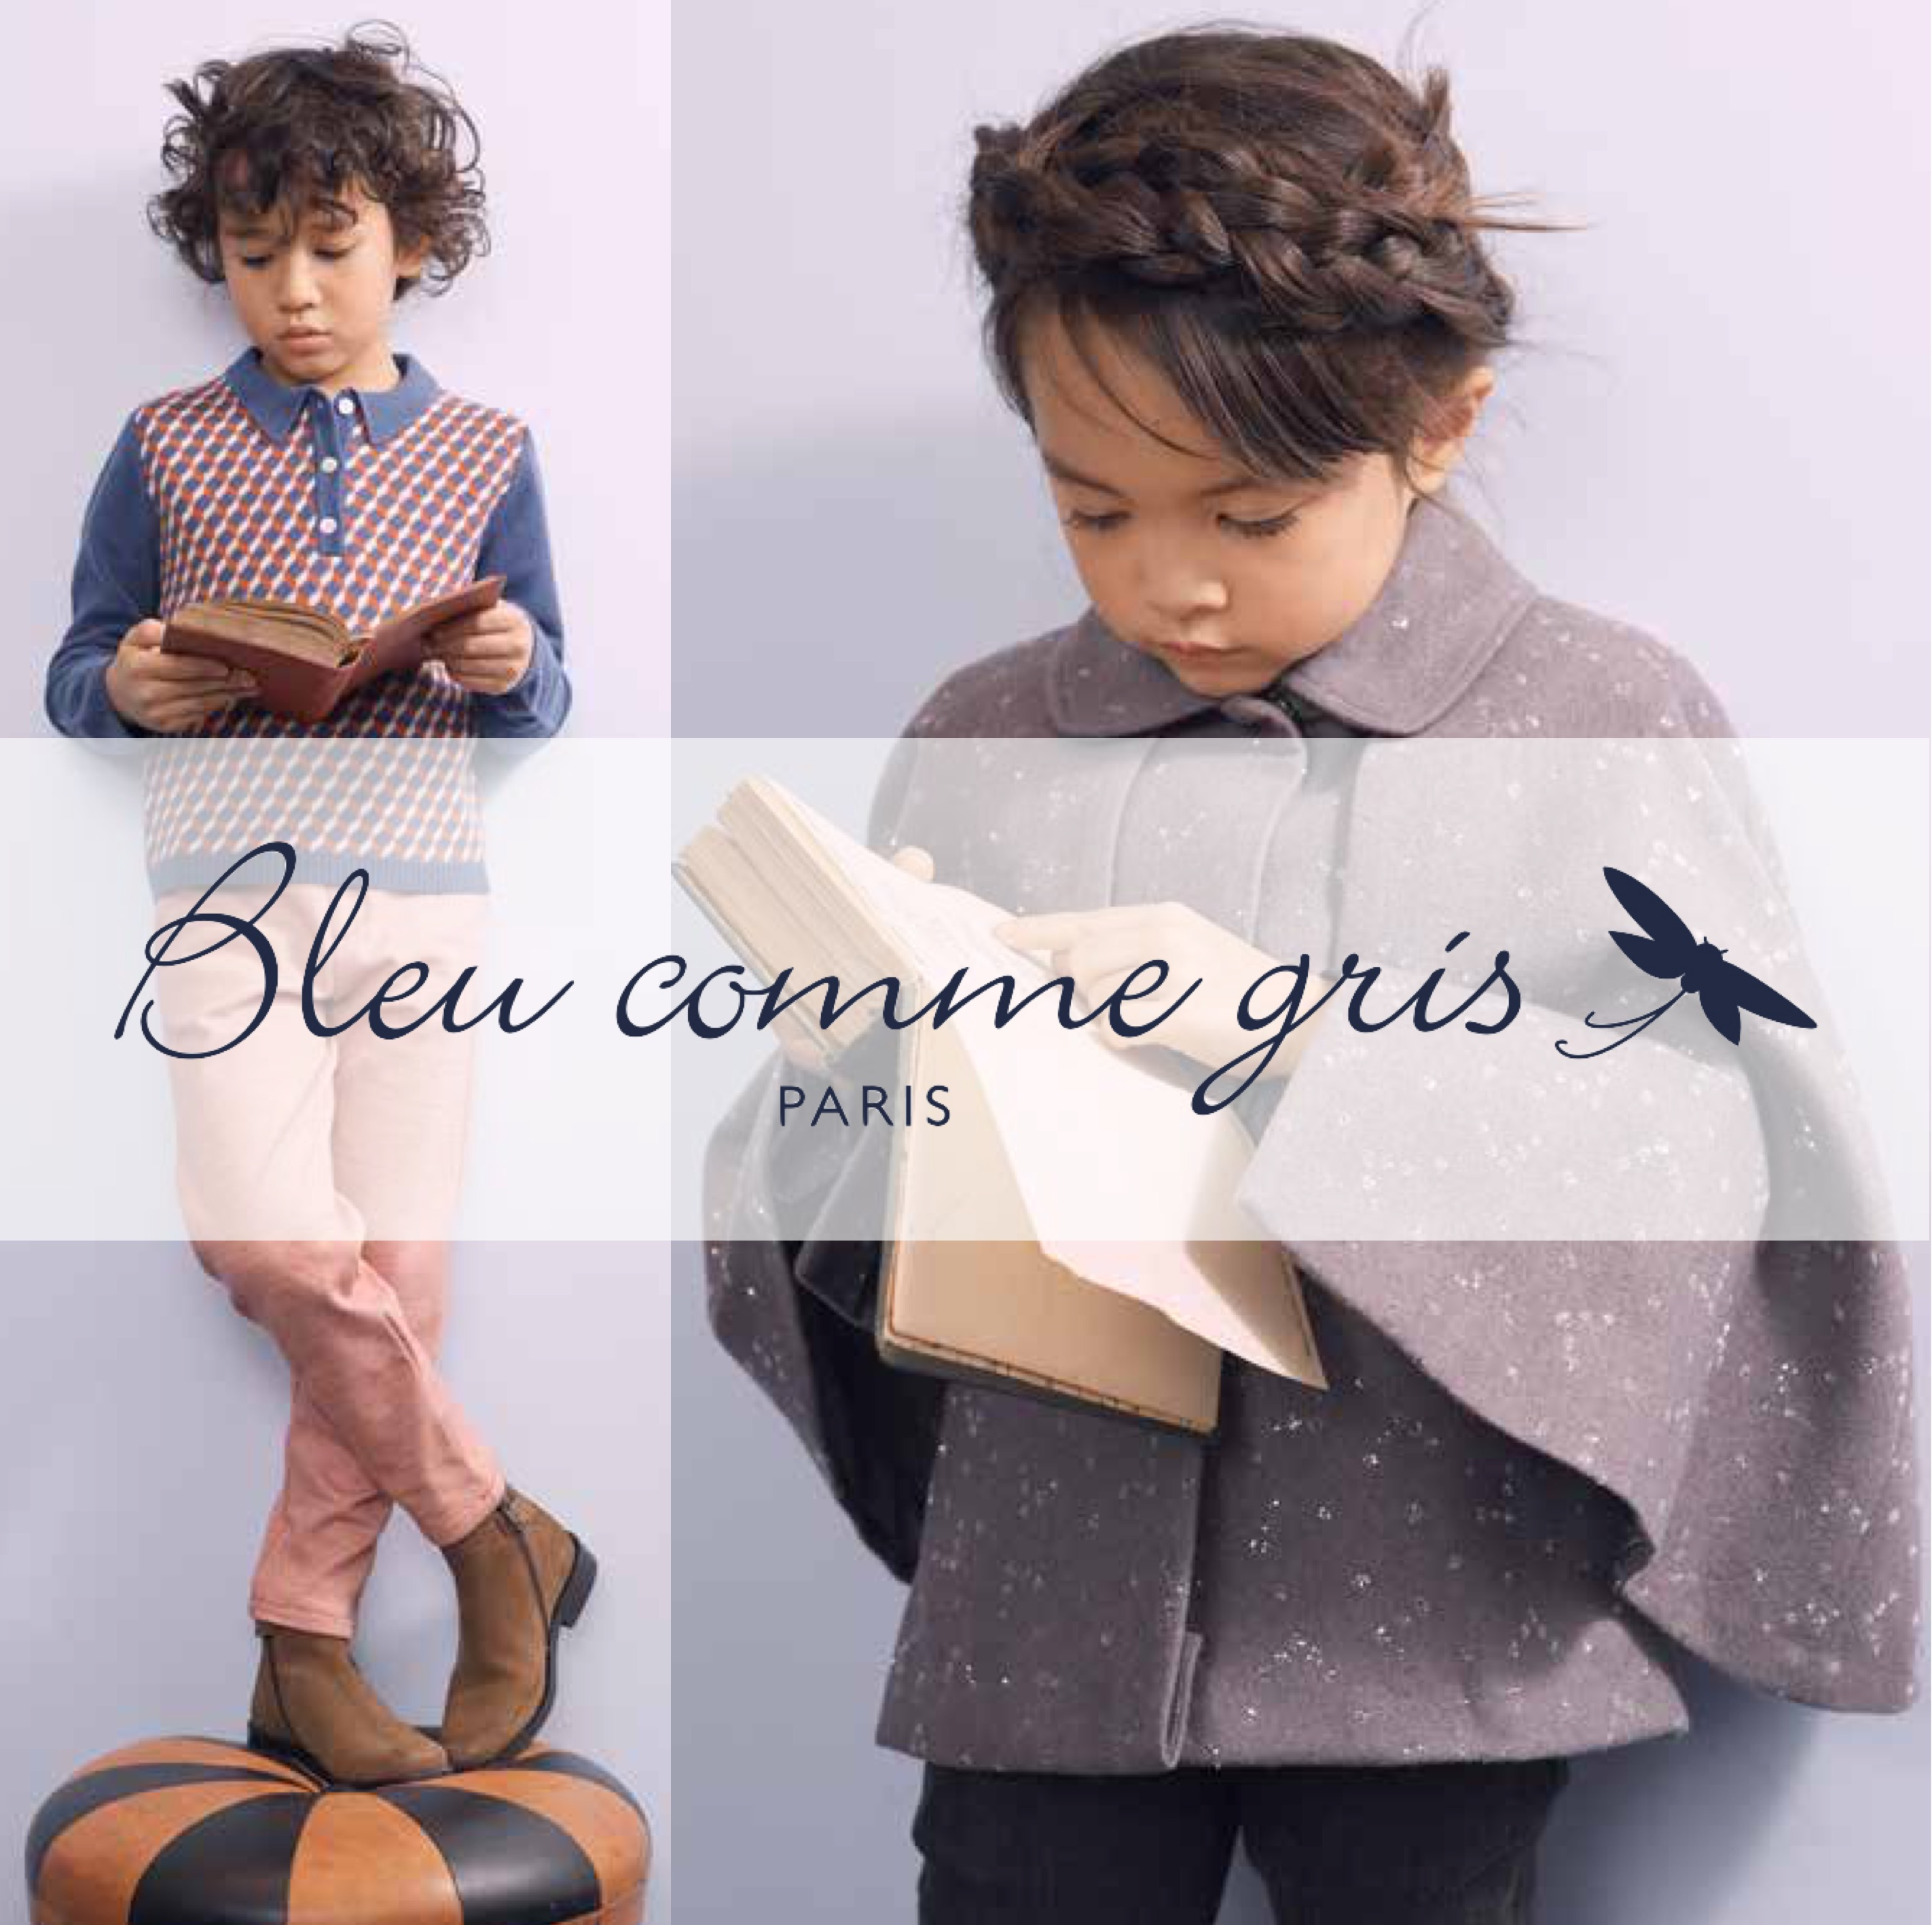 Blue Comme Gris homepage